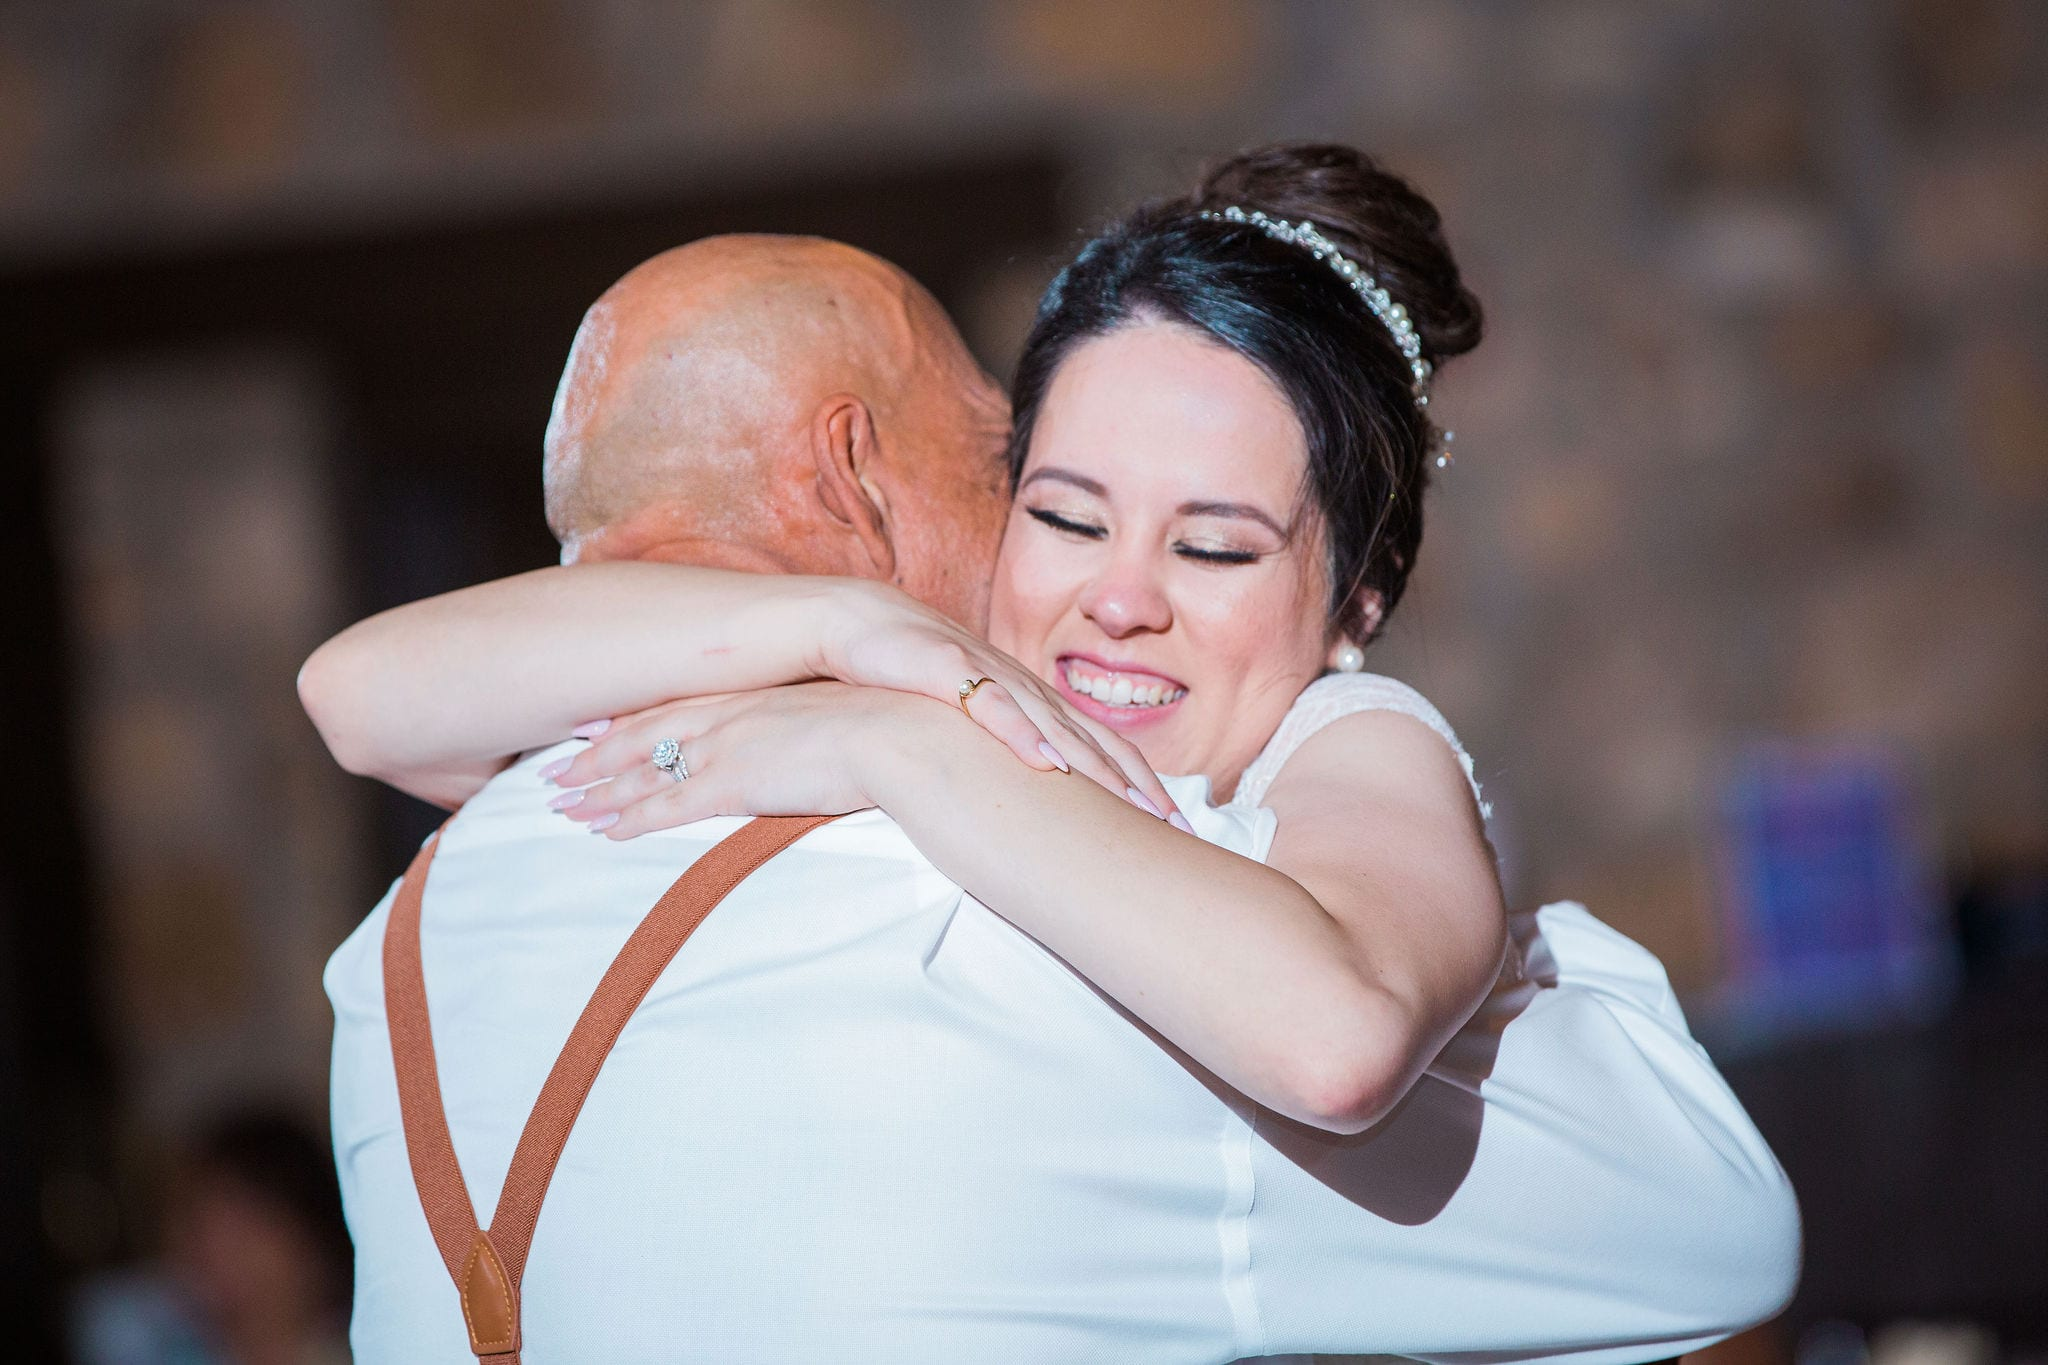 Aamber wedding Canyon Springs Golf Course fathers dance hug